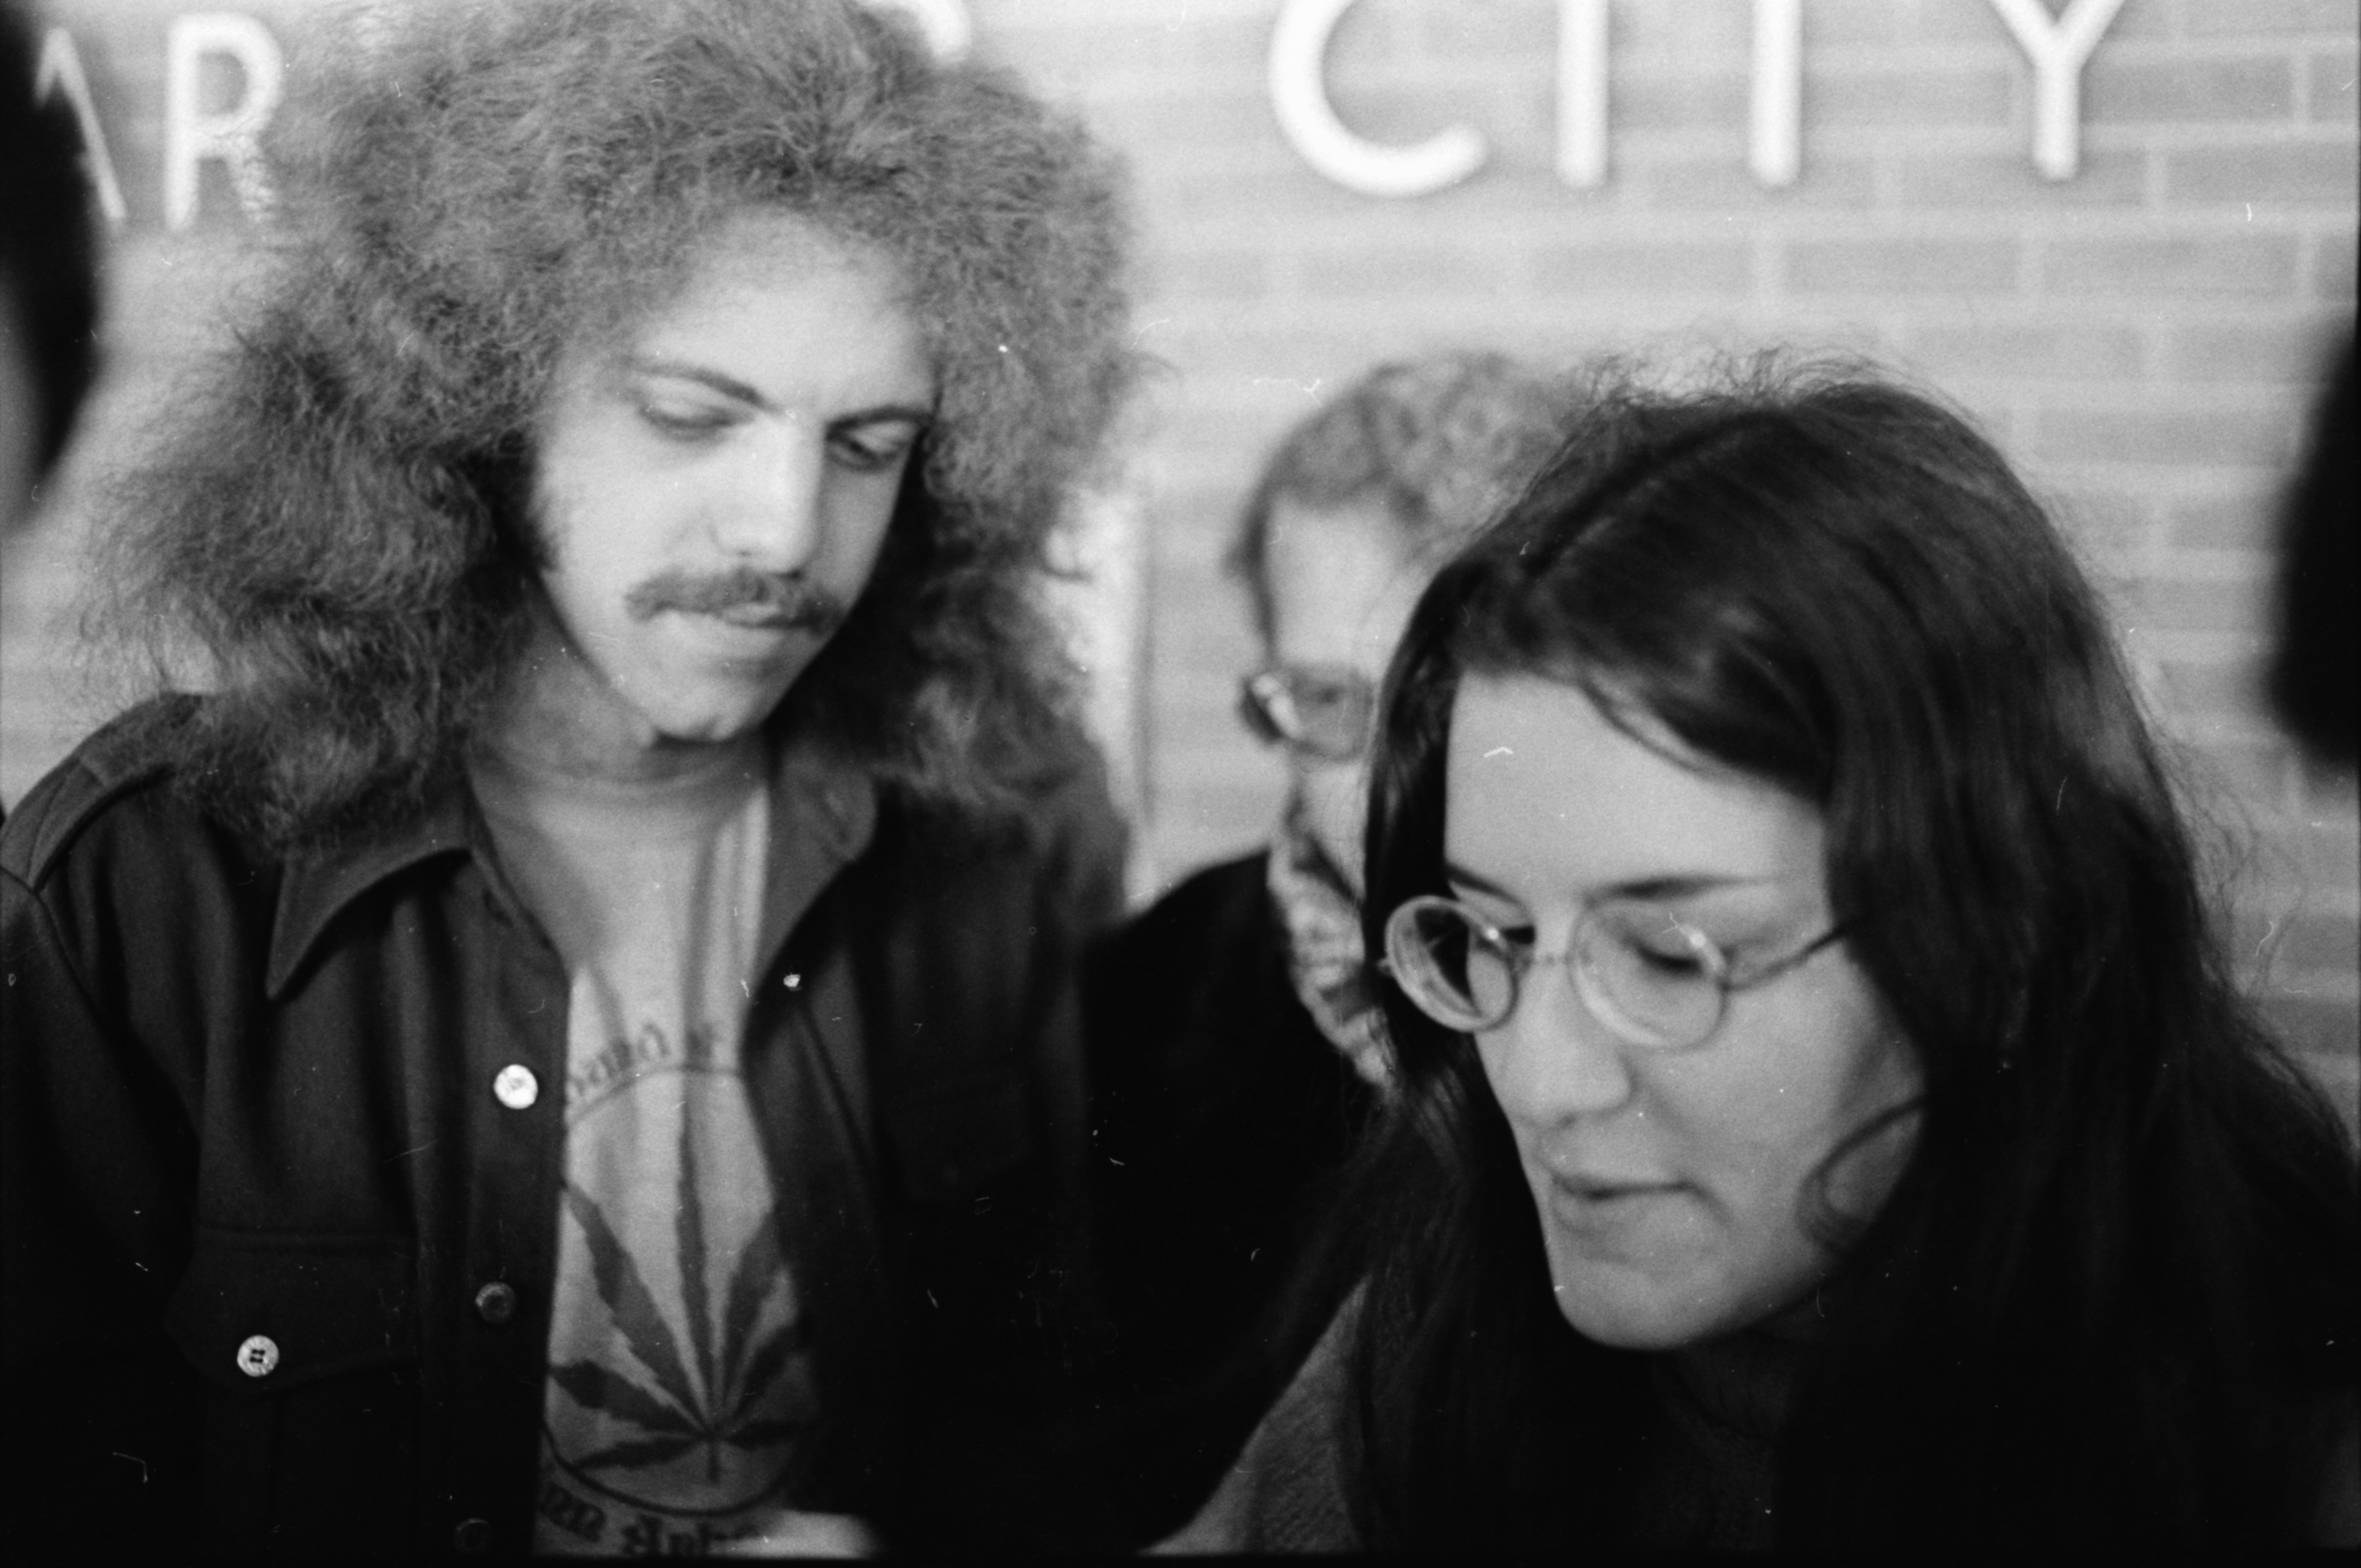 County Commissioner Catherine McClary and David Fenton at Drawing for Free Pot Giveaway, Ann Arbor City Hall, January 1975 image